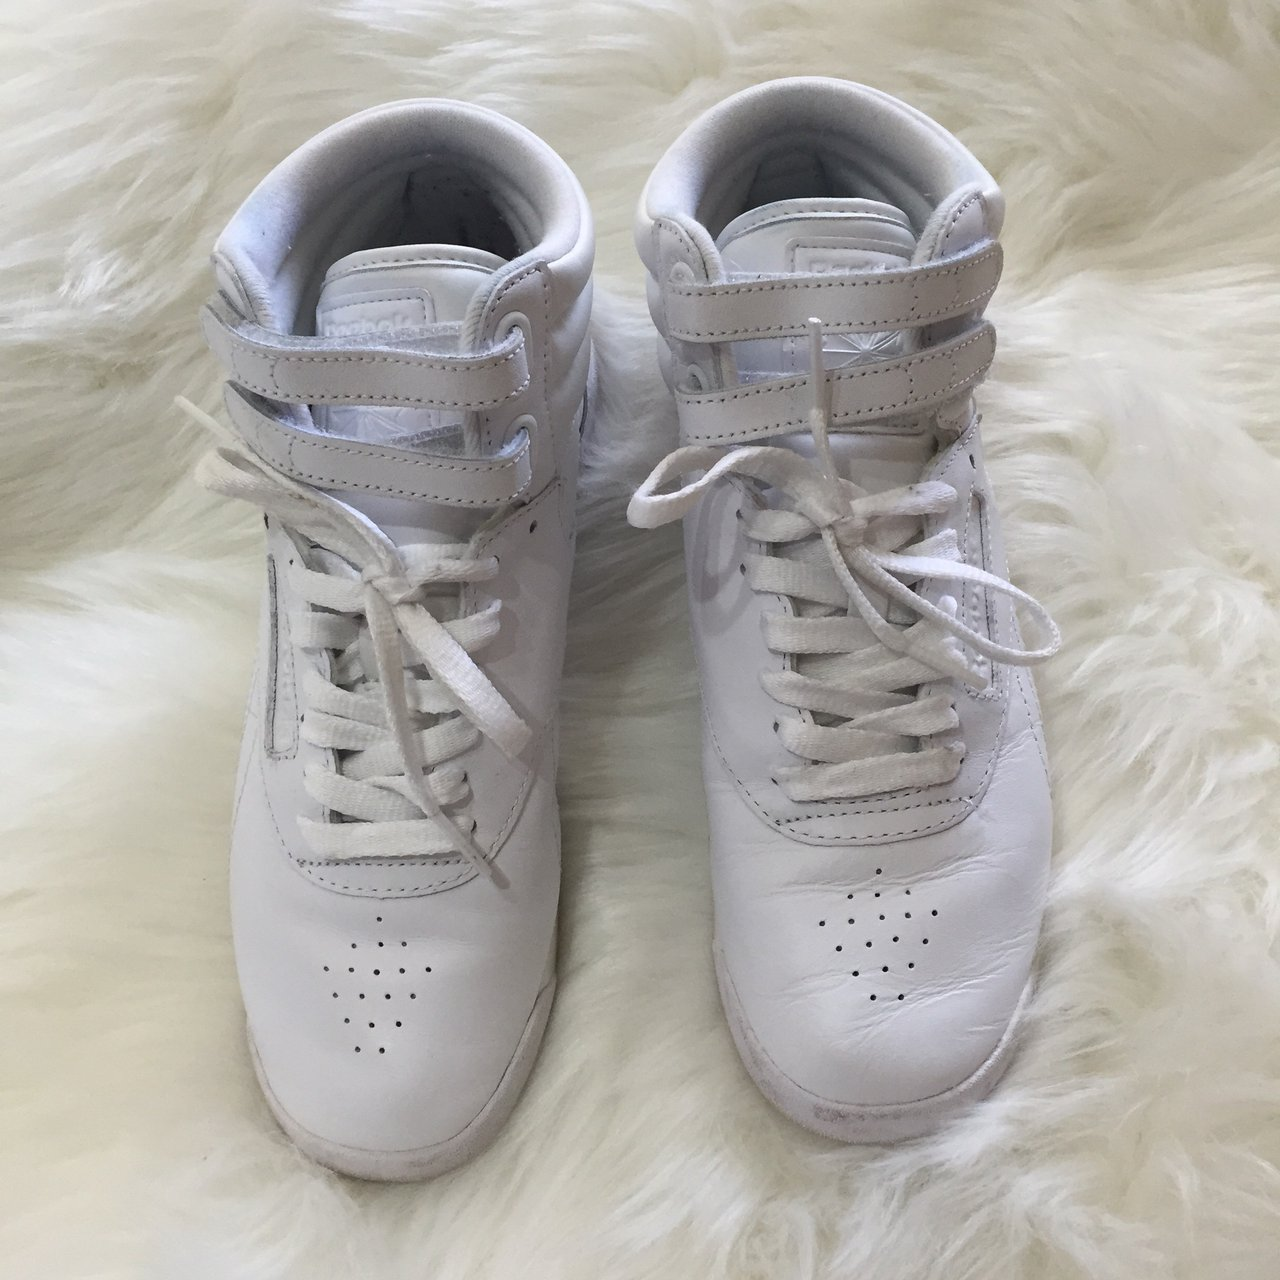 a81ee7e71d9b Reebok white leather high top sneakers Pretty good condition - Depop